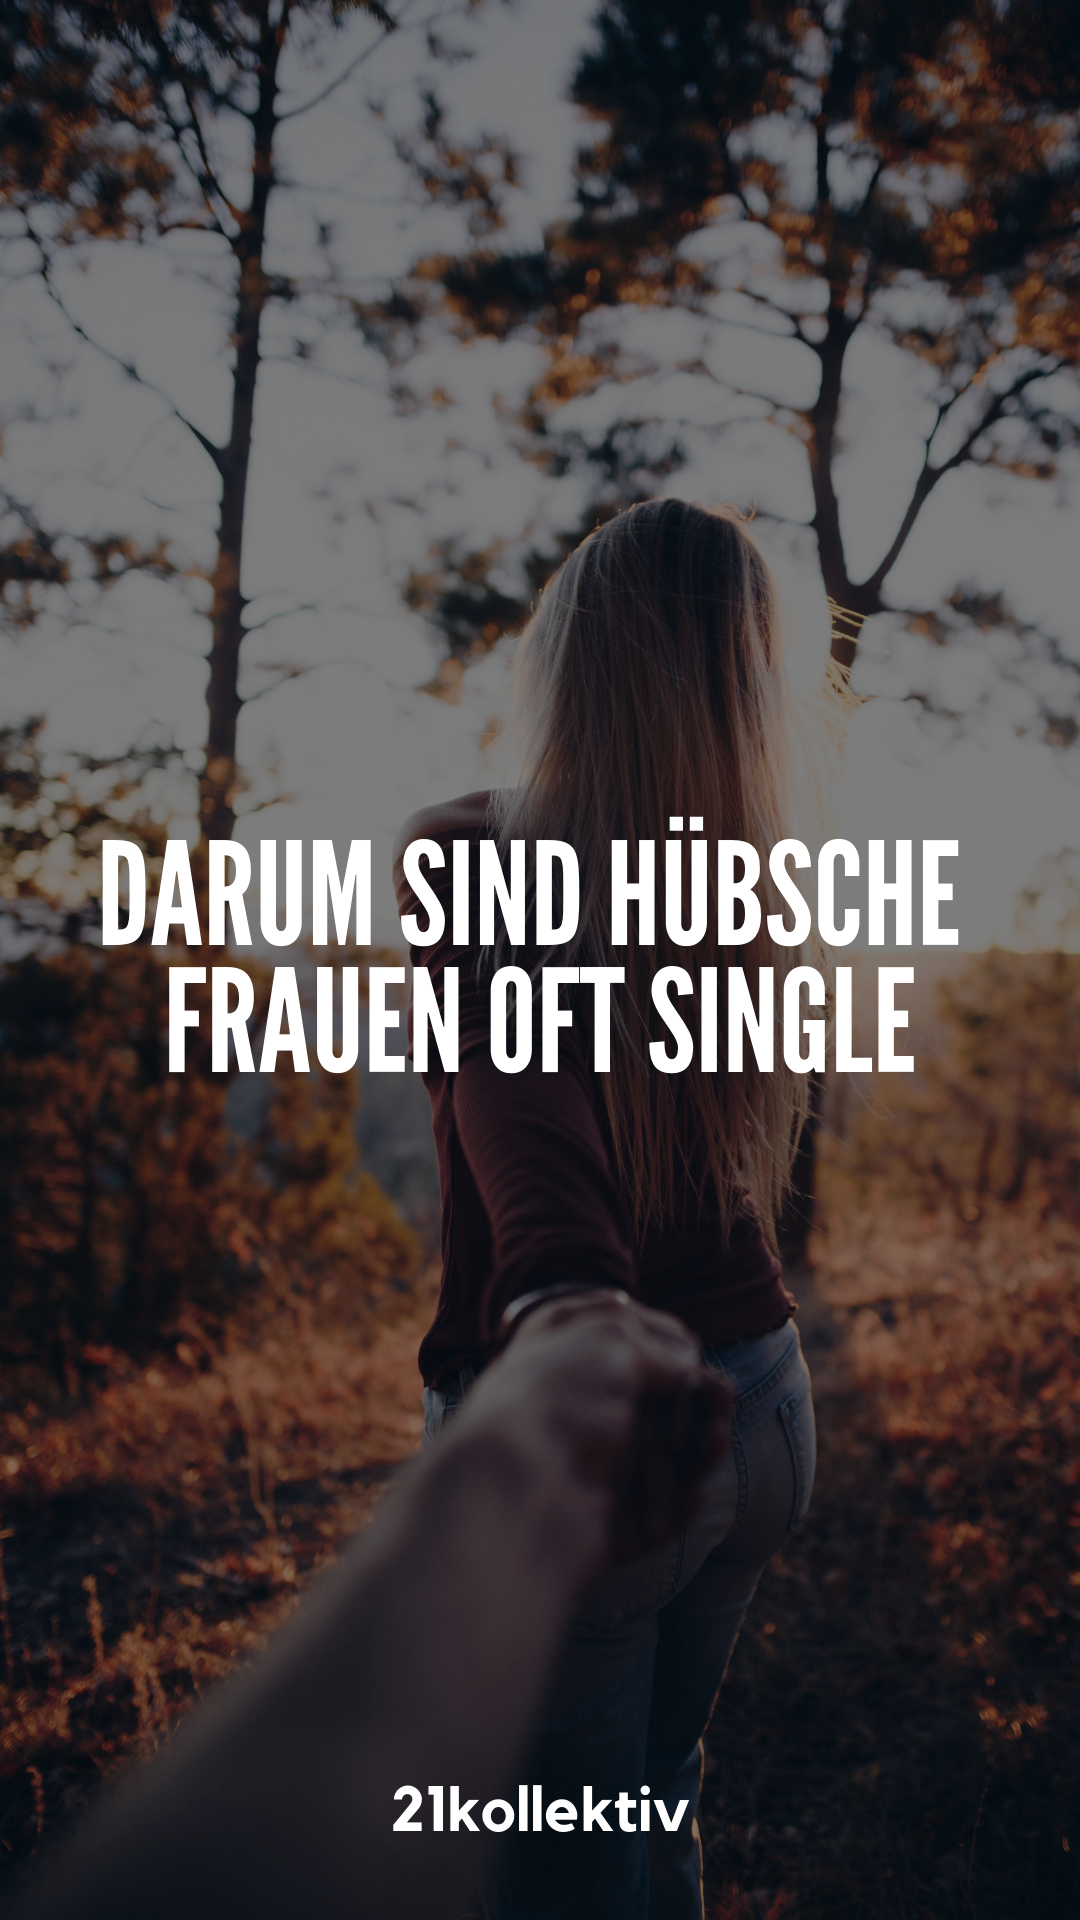 Attraktive frauen öfter single